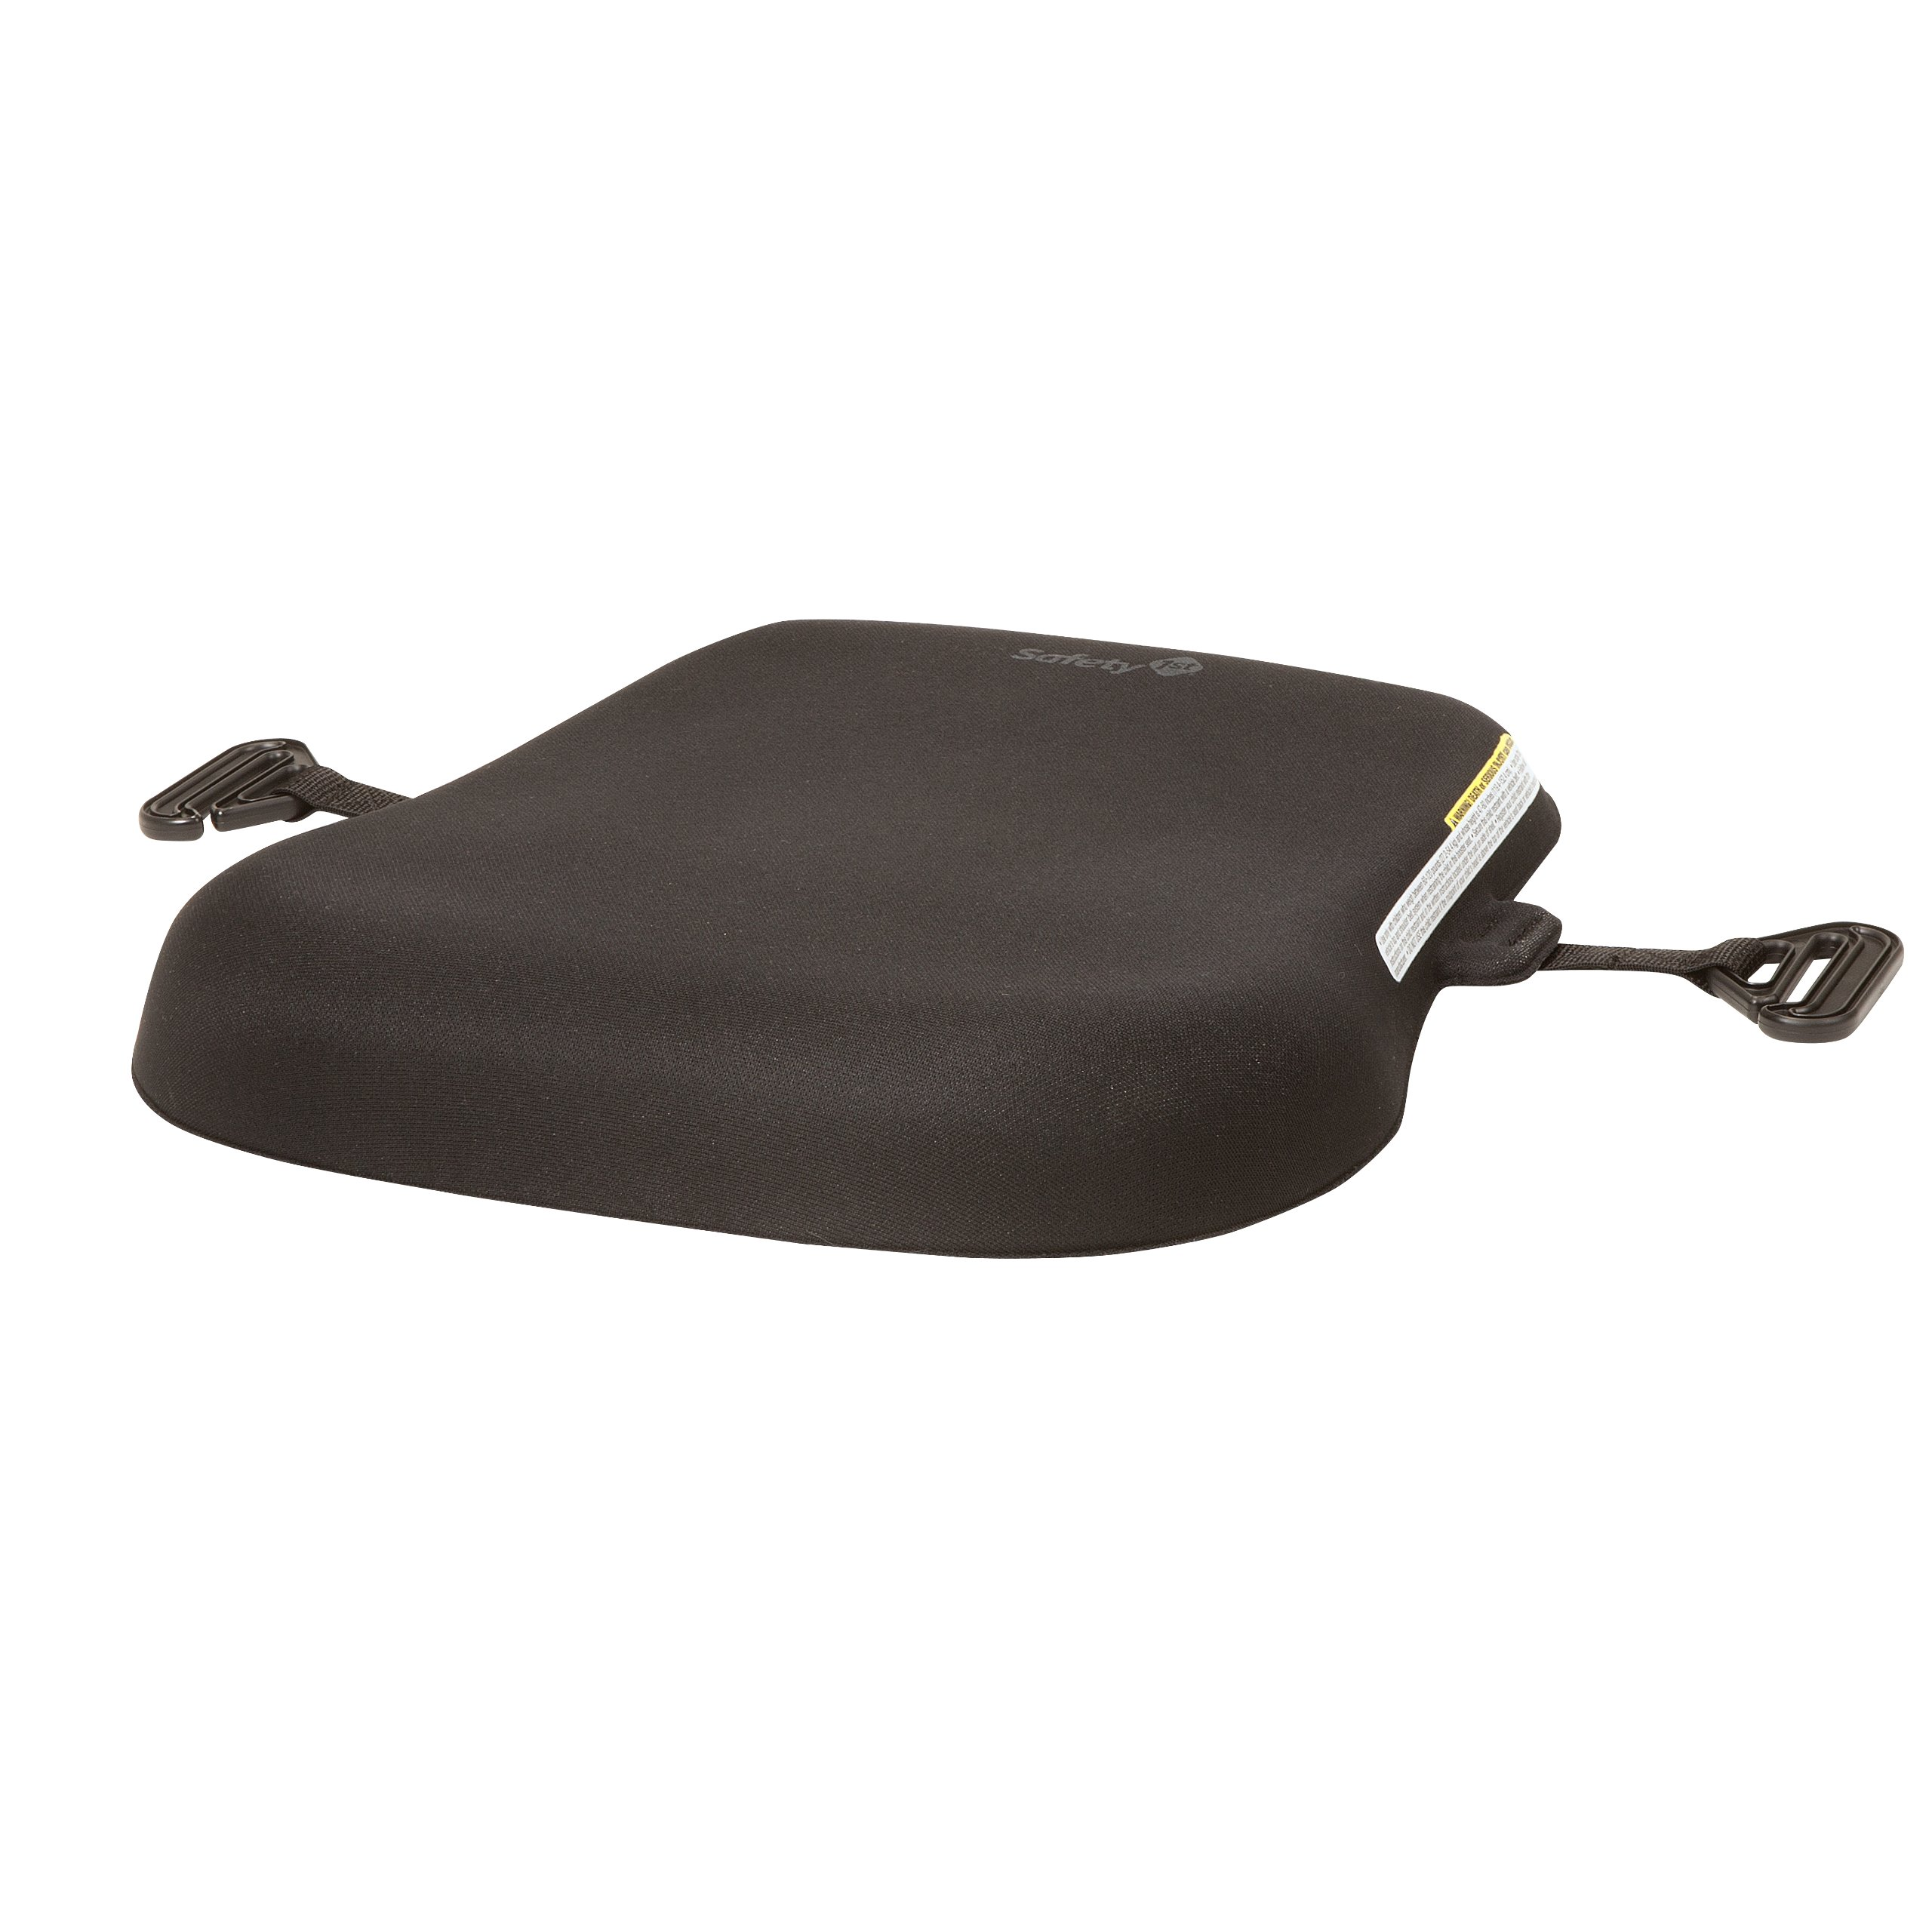 Safety 1st Incognito Kid Positioning Seat, Black